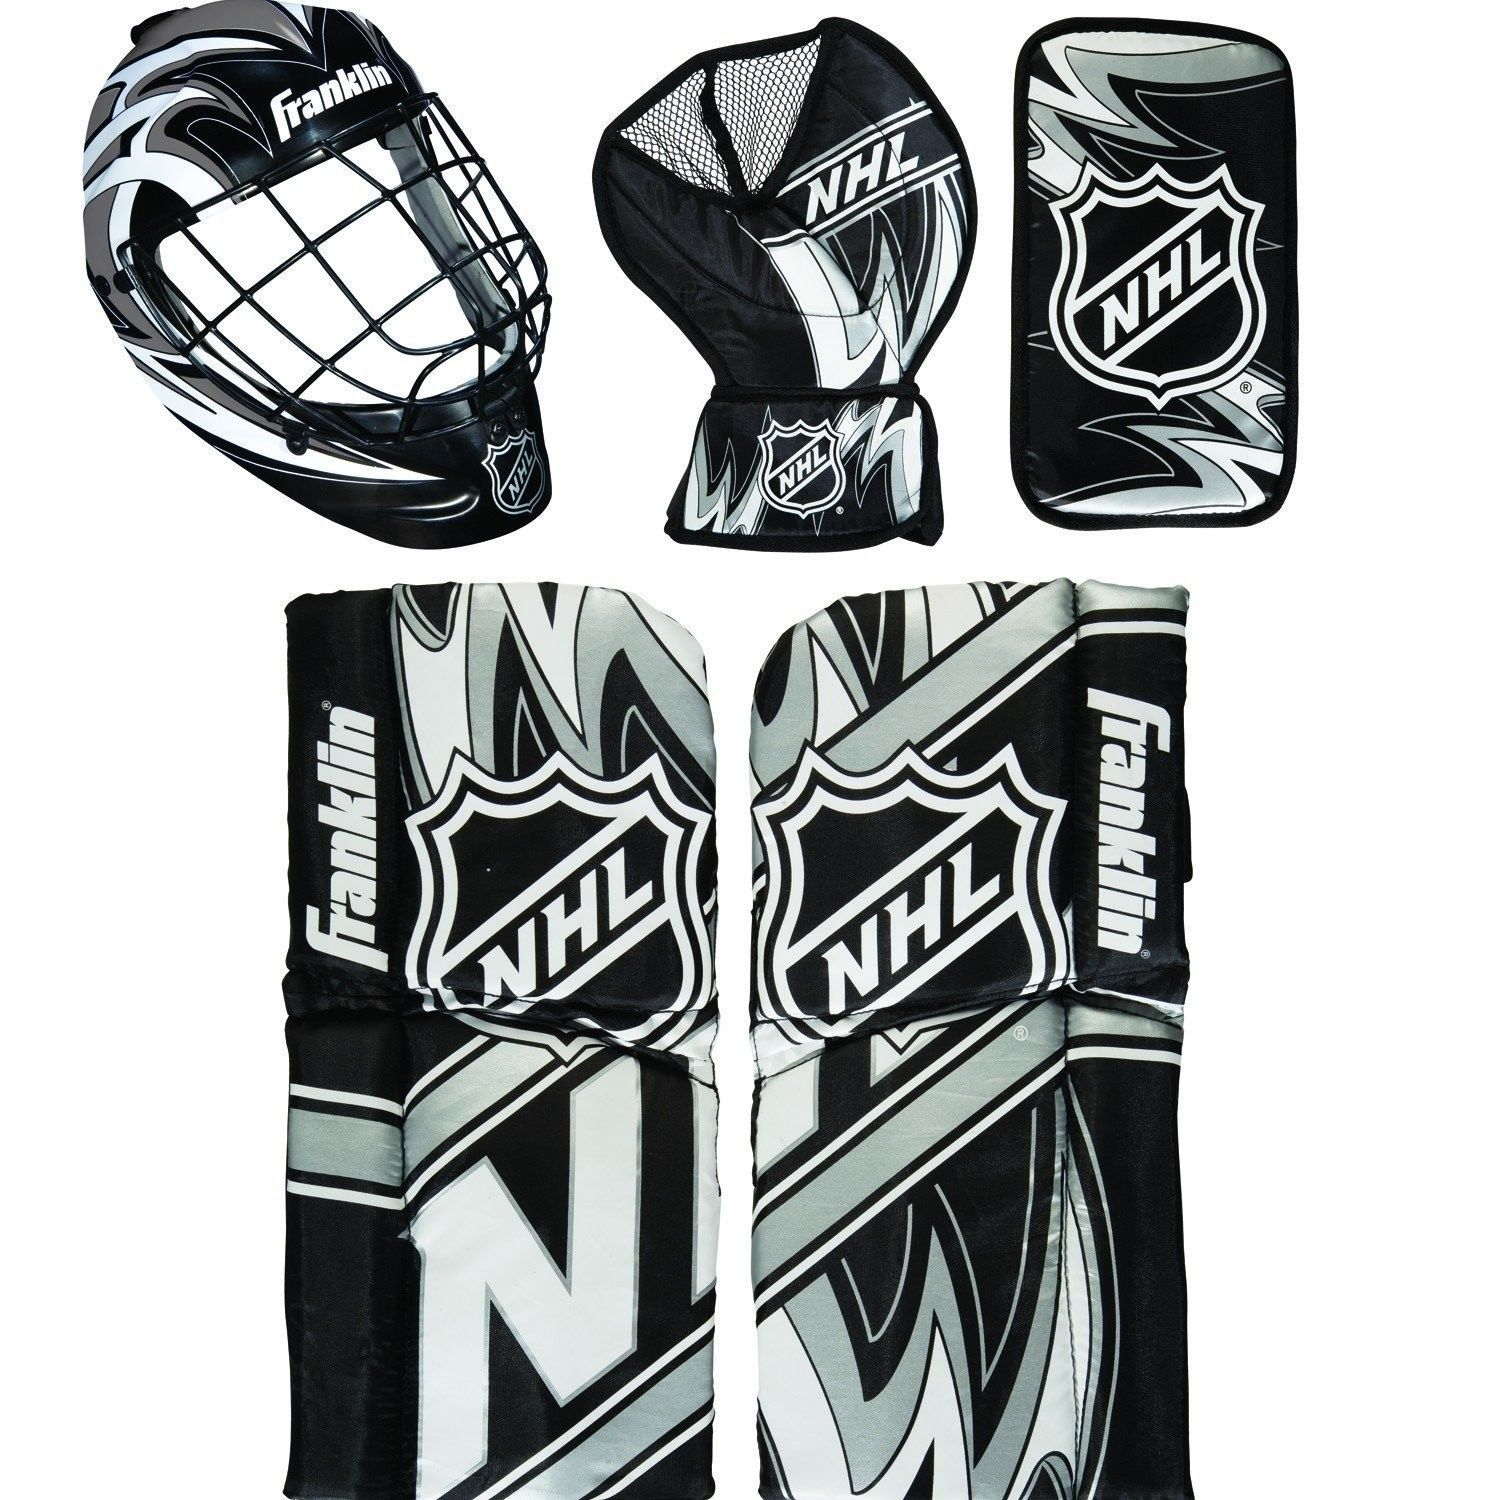 Children S Franklin Sports Nhl Mini Hockey Goalie Equipment Mask Set Ages 3 To 6 All Proceeds Go To The Disabled Hockey Goalie Equipment Hockey Goalie Gear